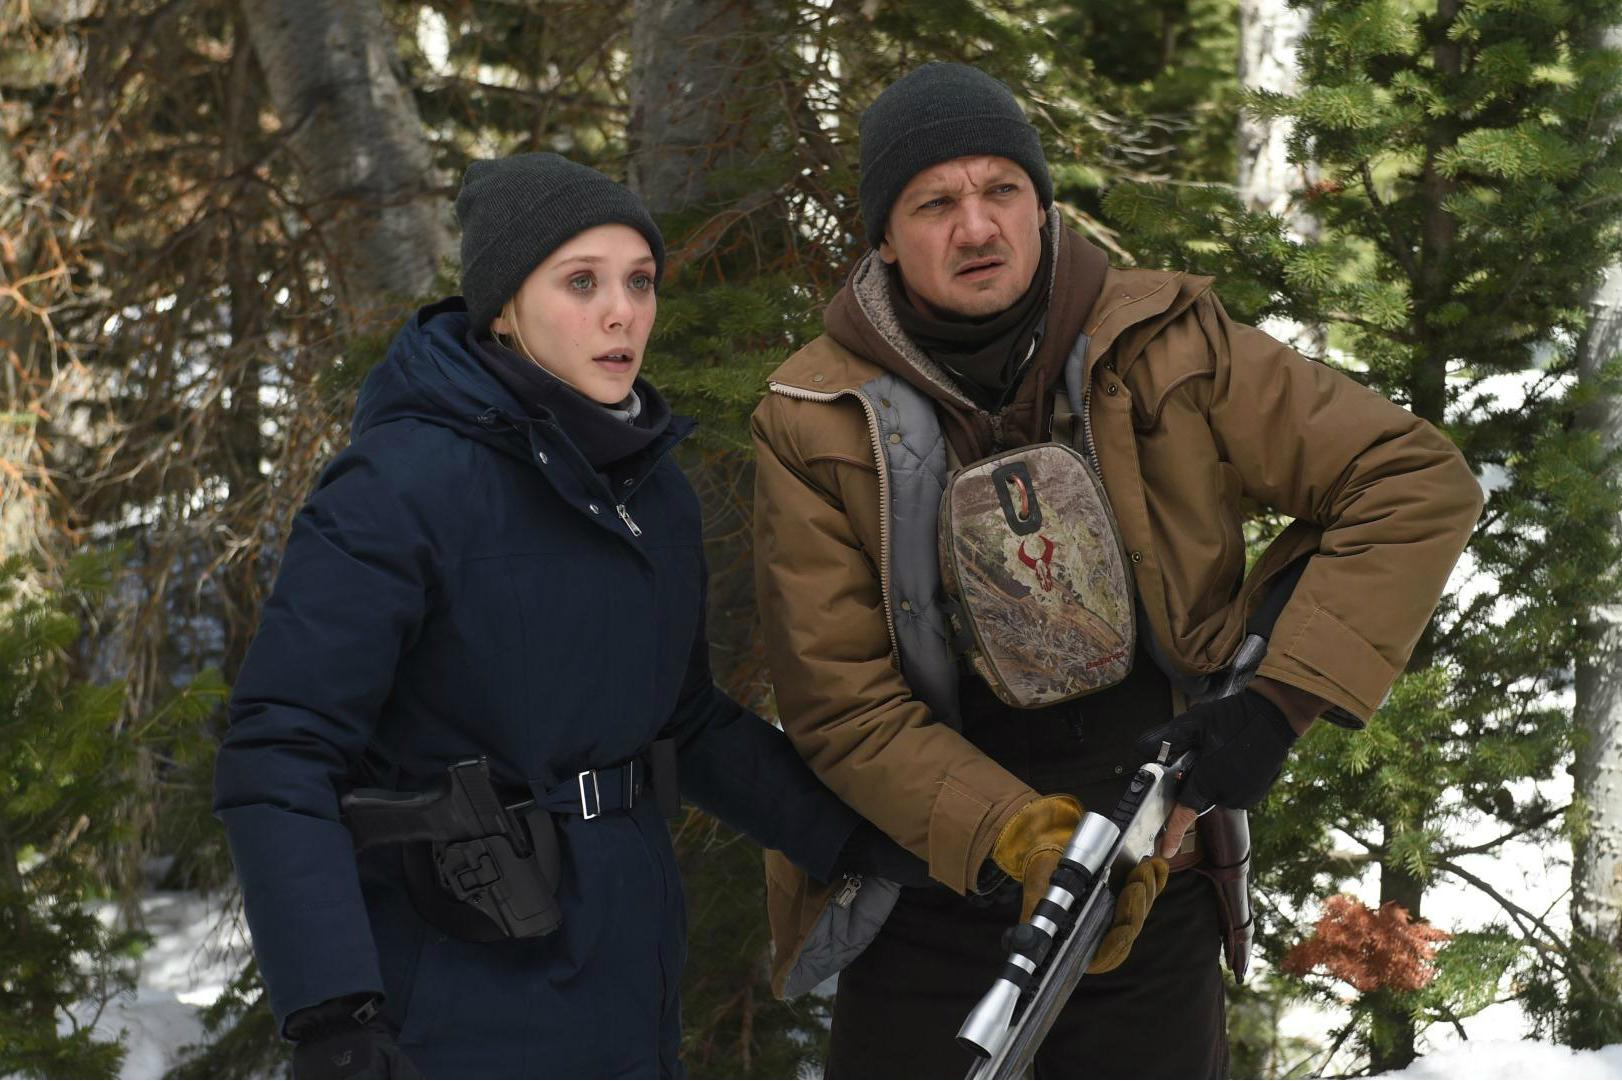 Film reviews round-up: Wind River, It, The Work, Insyriated, Dennis Skinner: Nature of the Beat